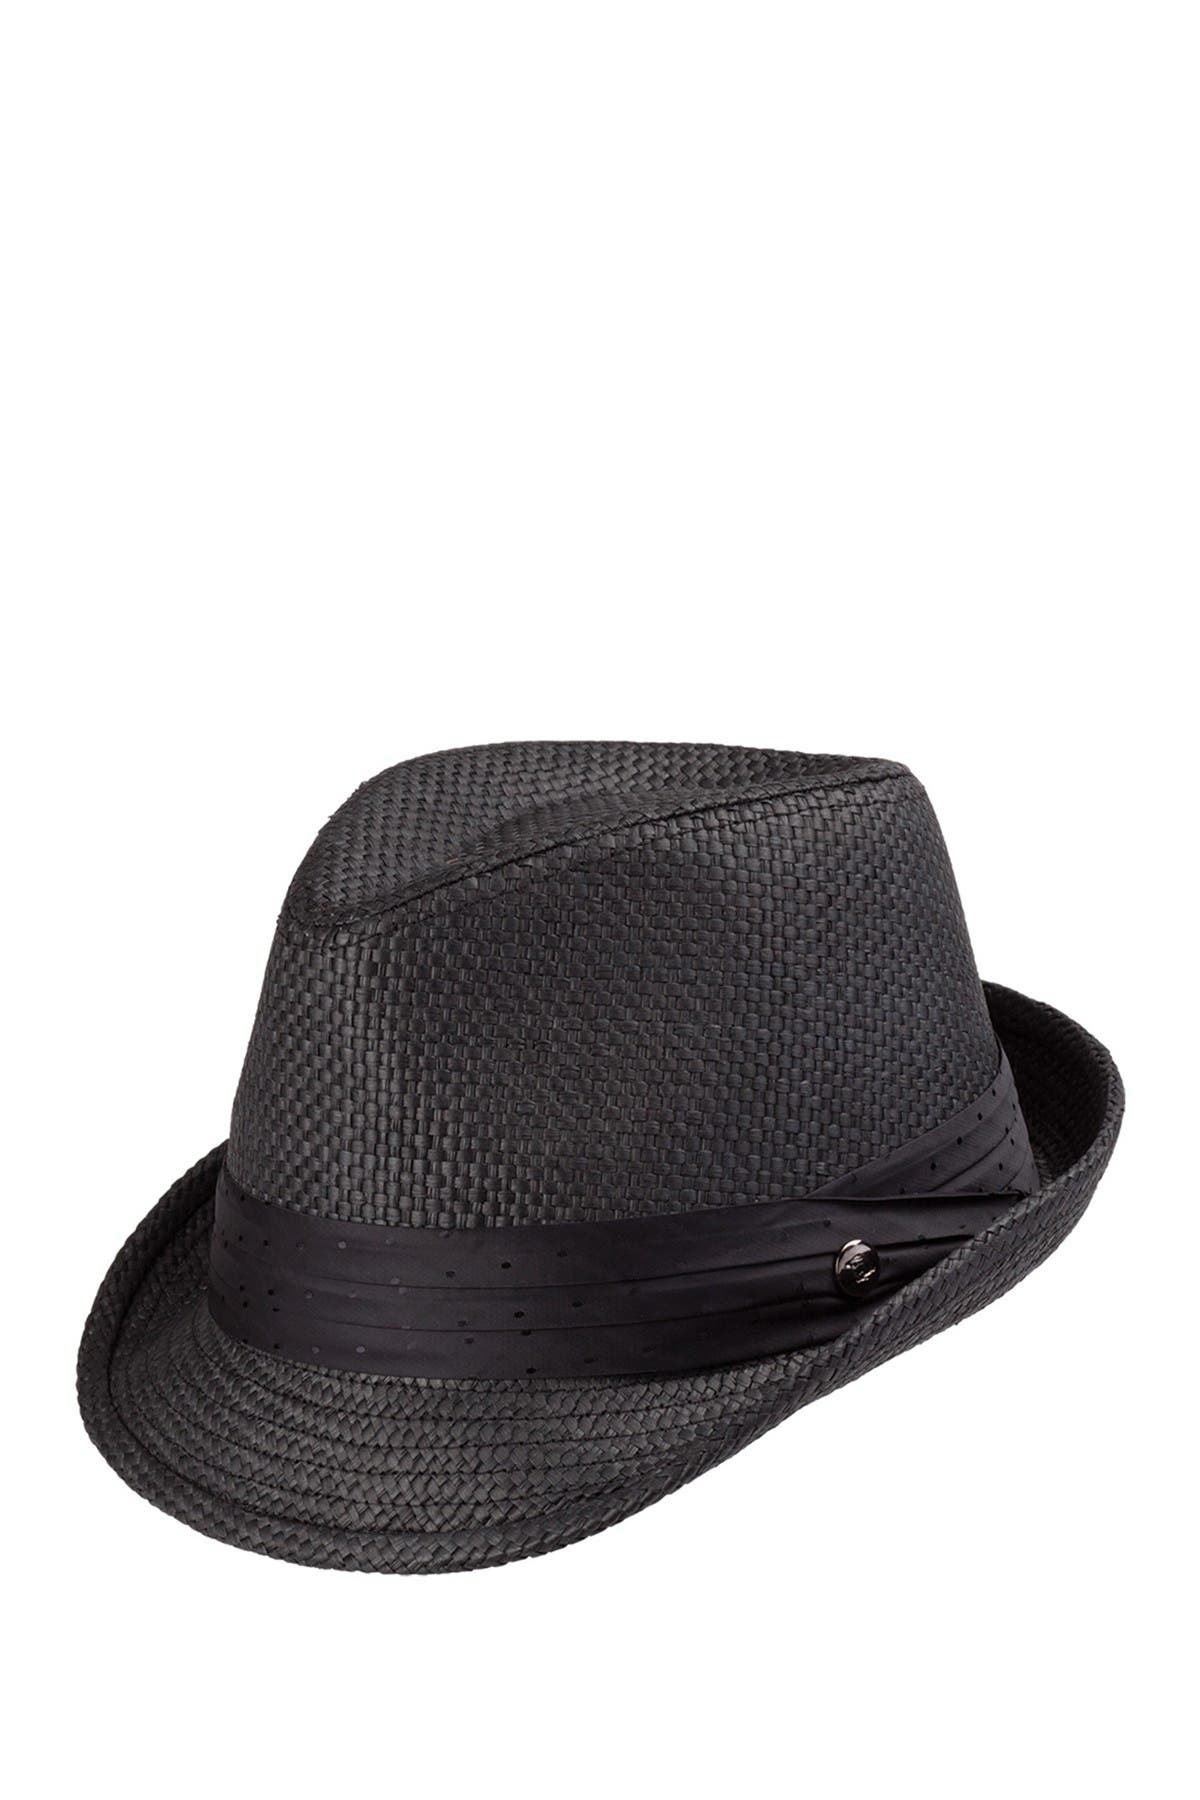 Image of Peter Grimm Headwear Stoli Woven Fedora